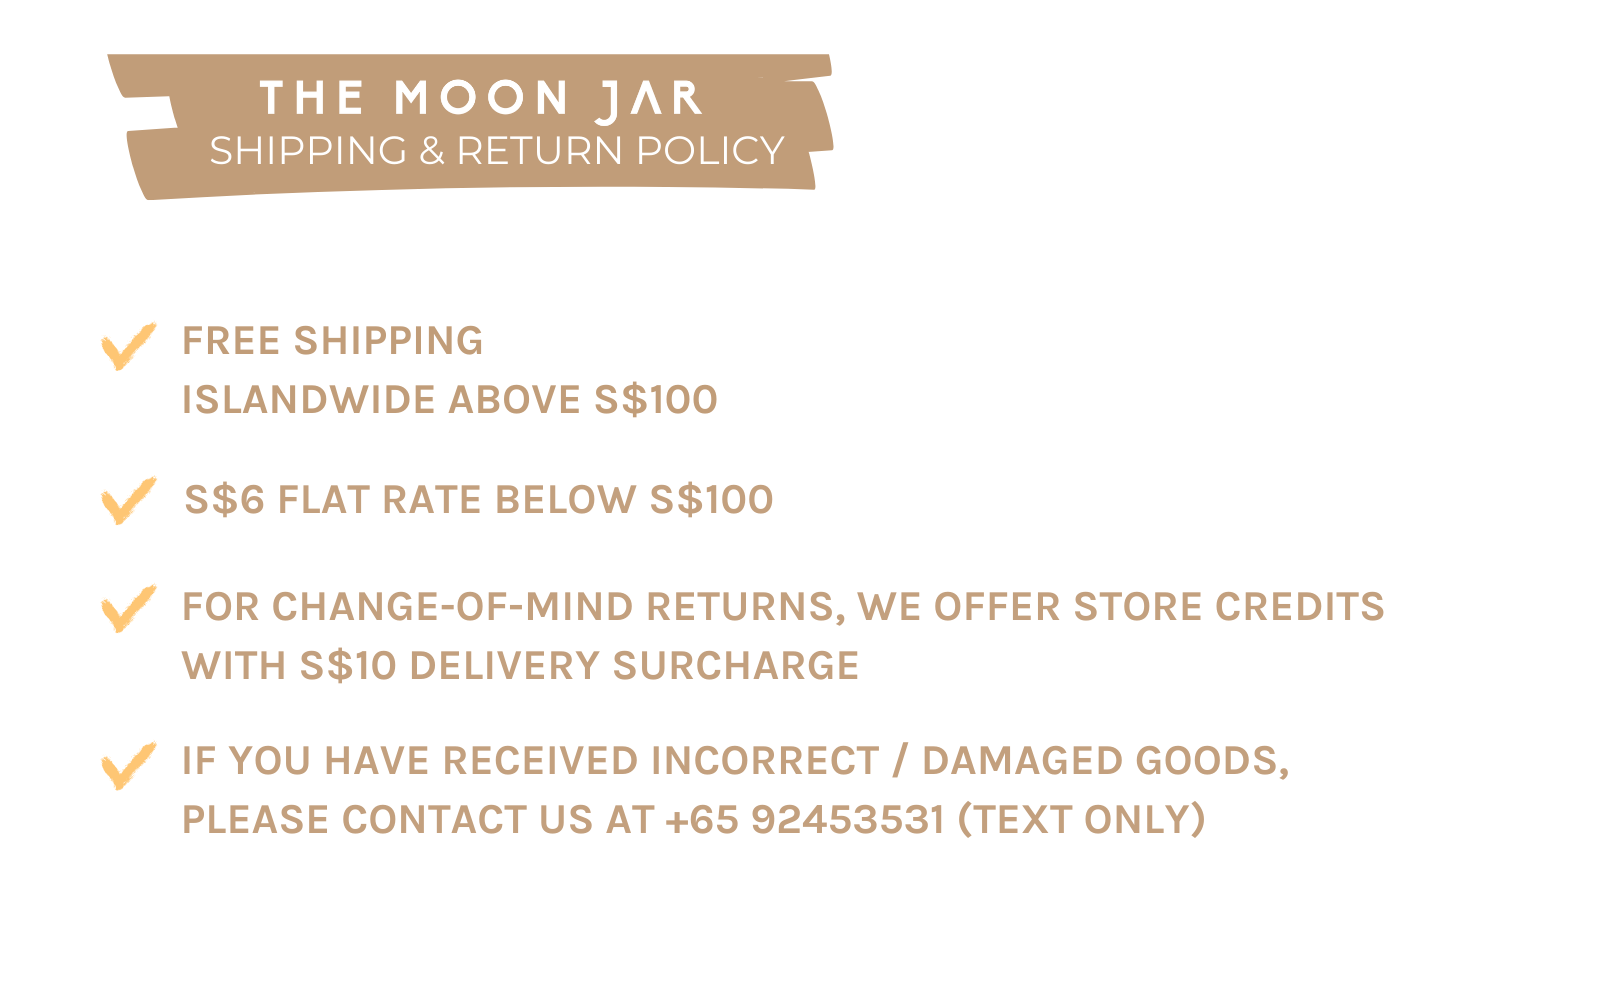 shipping and refund policy The Moon Jar